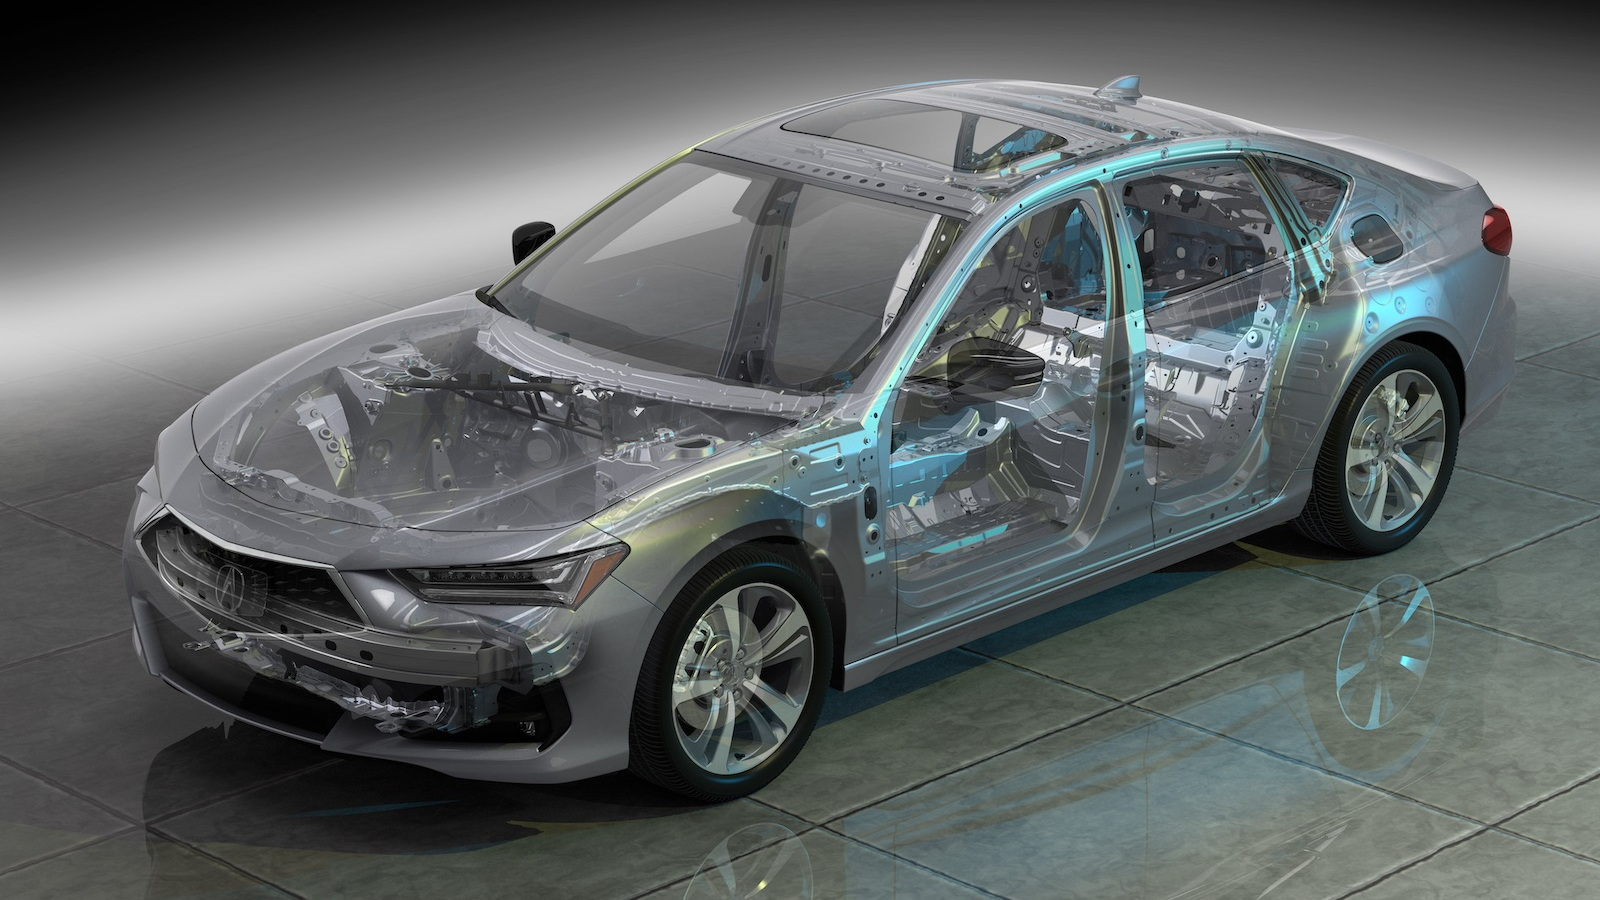 2021 Acura TLX ghosted view